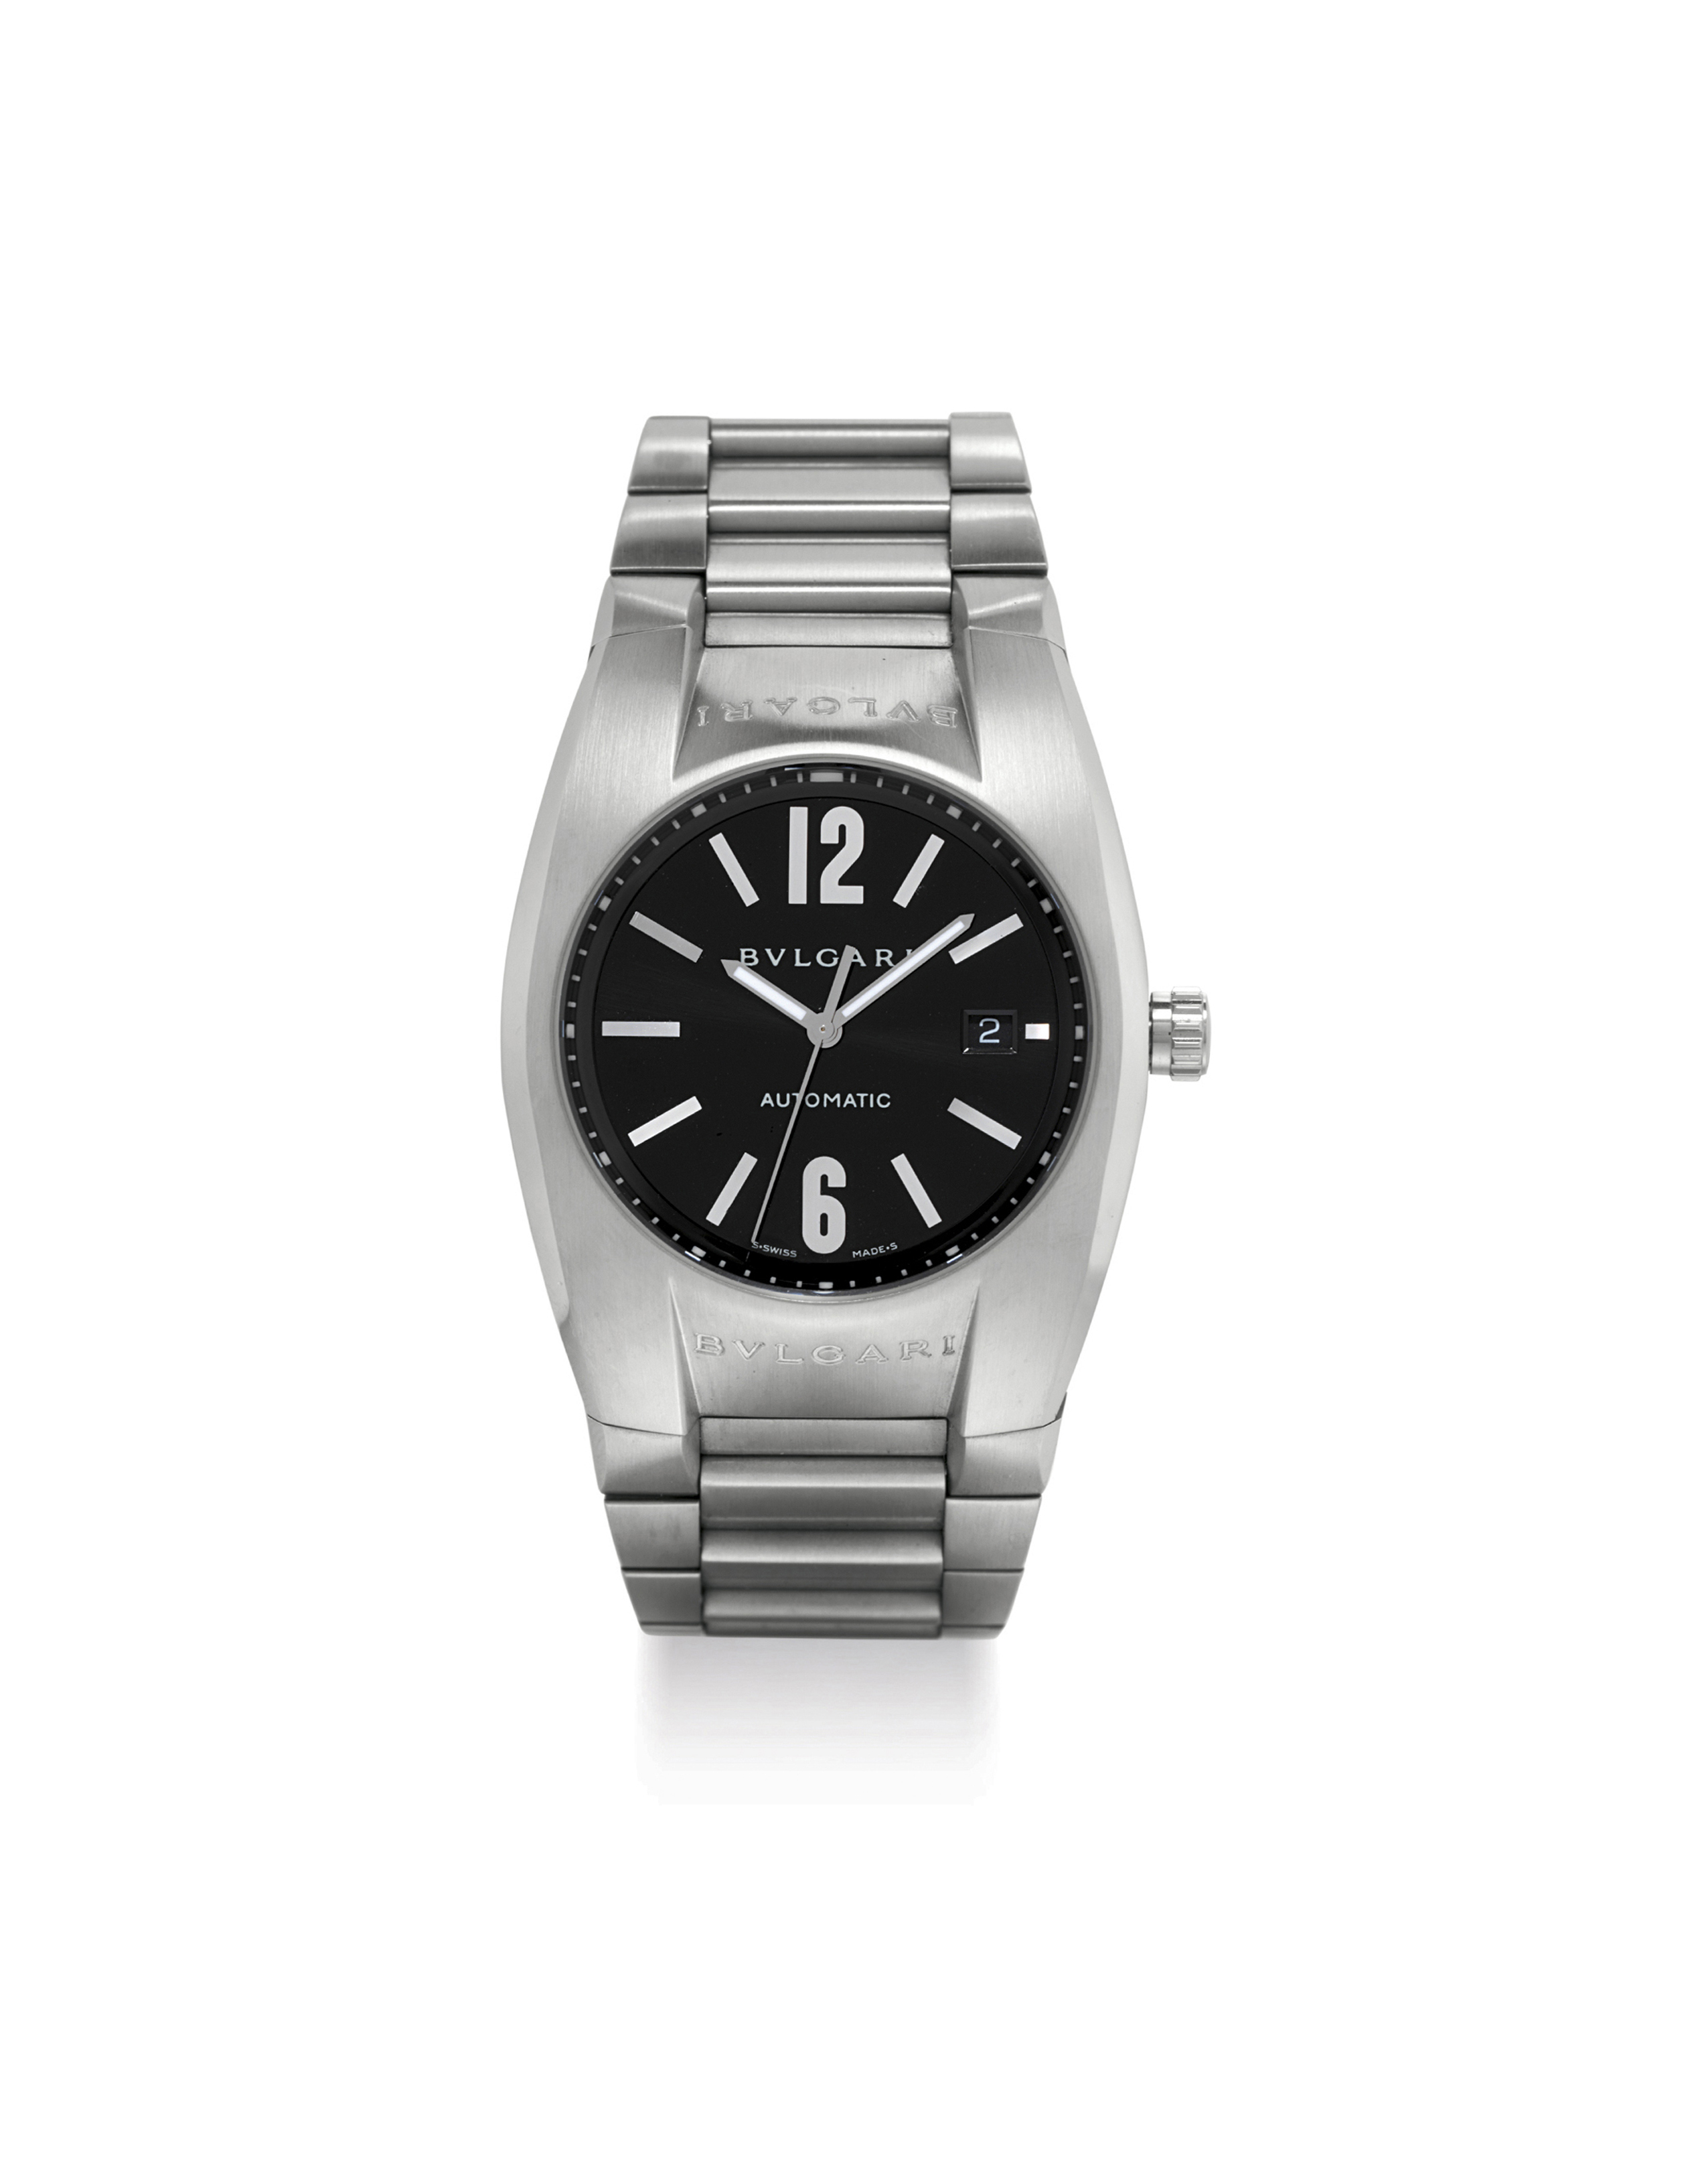 BVLGARI. A LARGE STAINLESS STEEL AUTOMATIC WRISTWATCH WITH SWEEP CENTRE SECONDS, DATE AND BRACELET